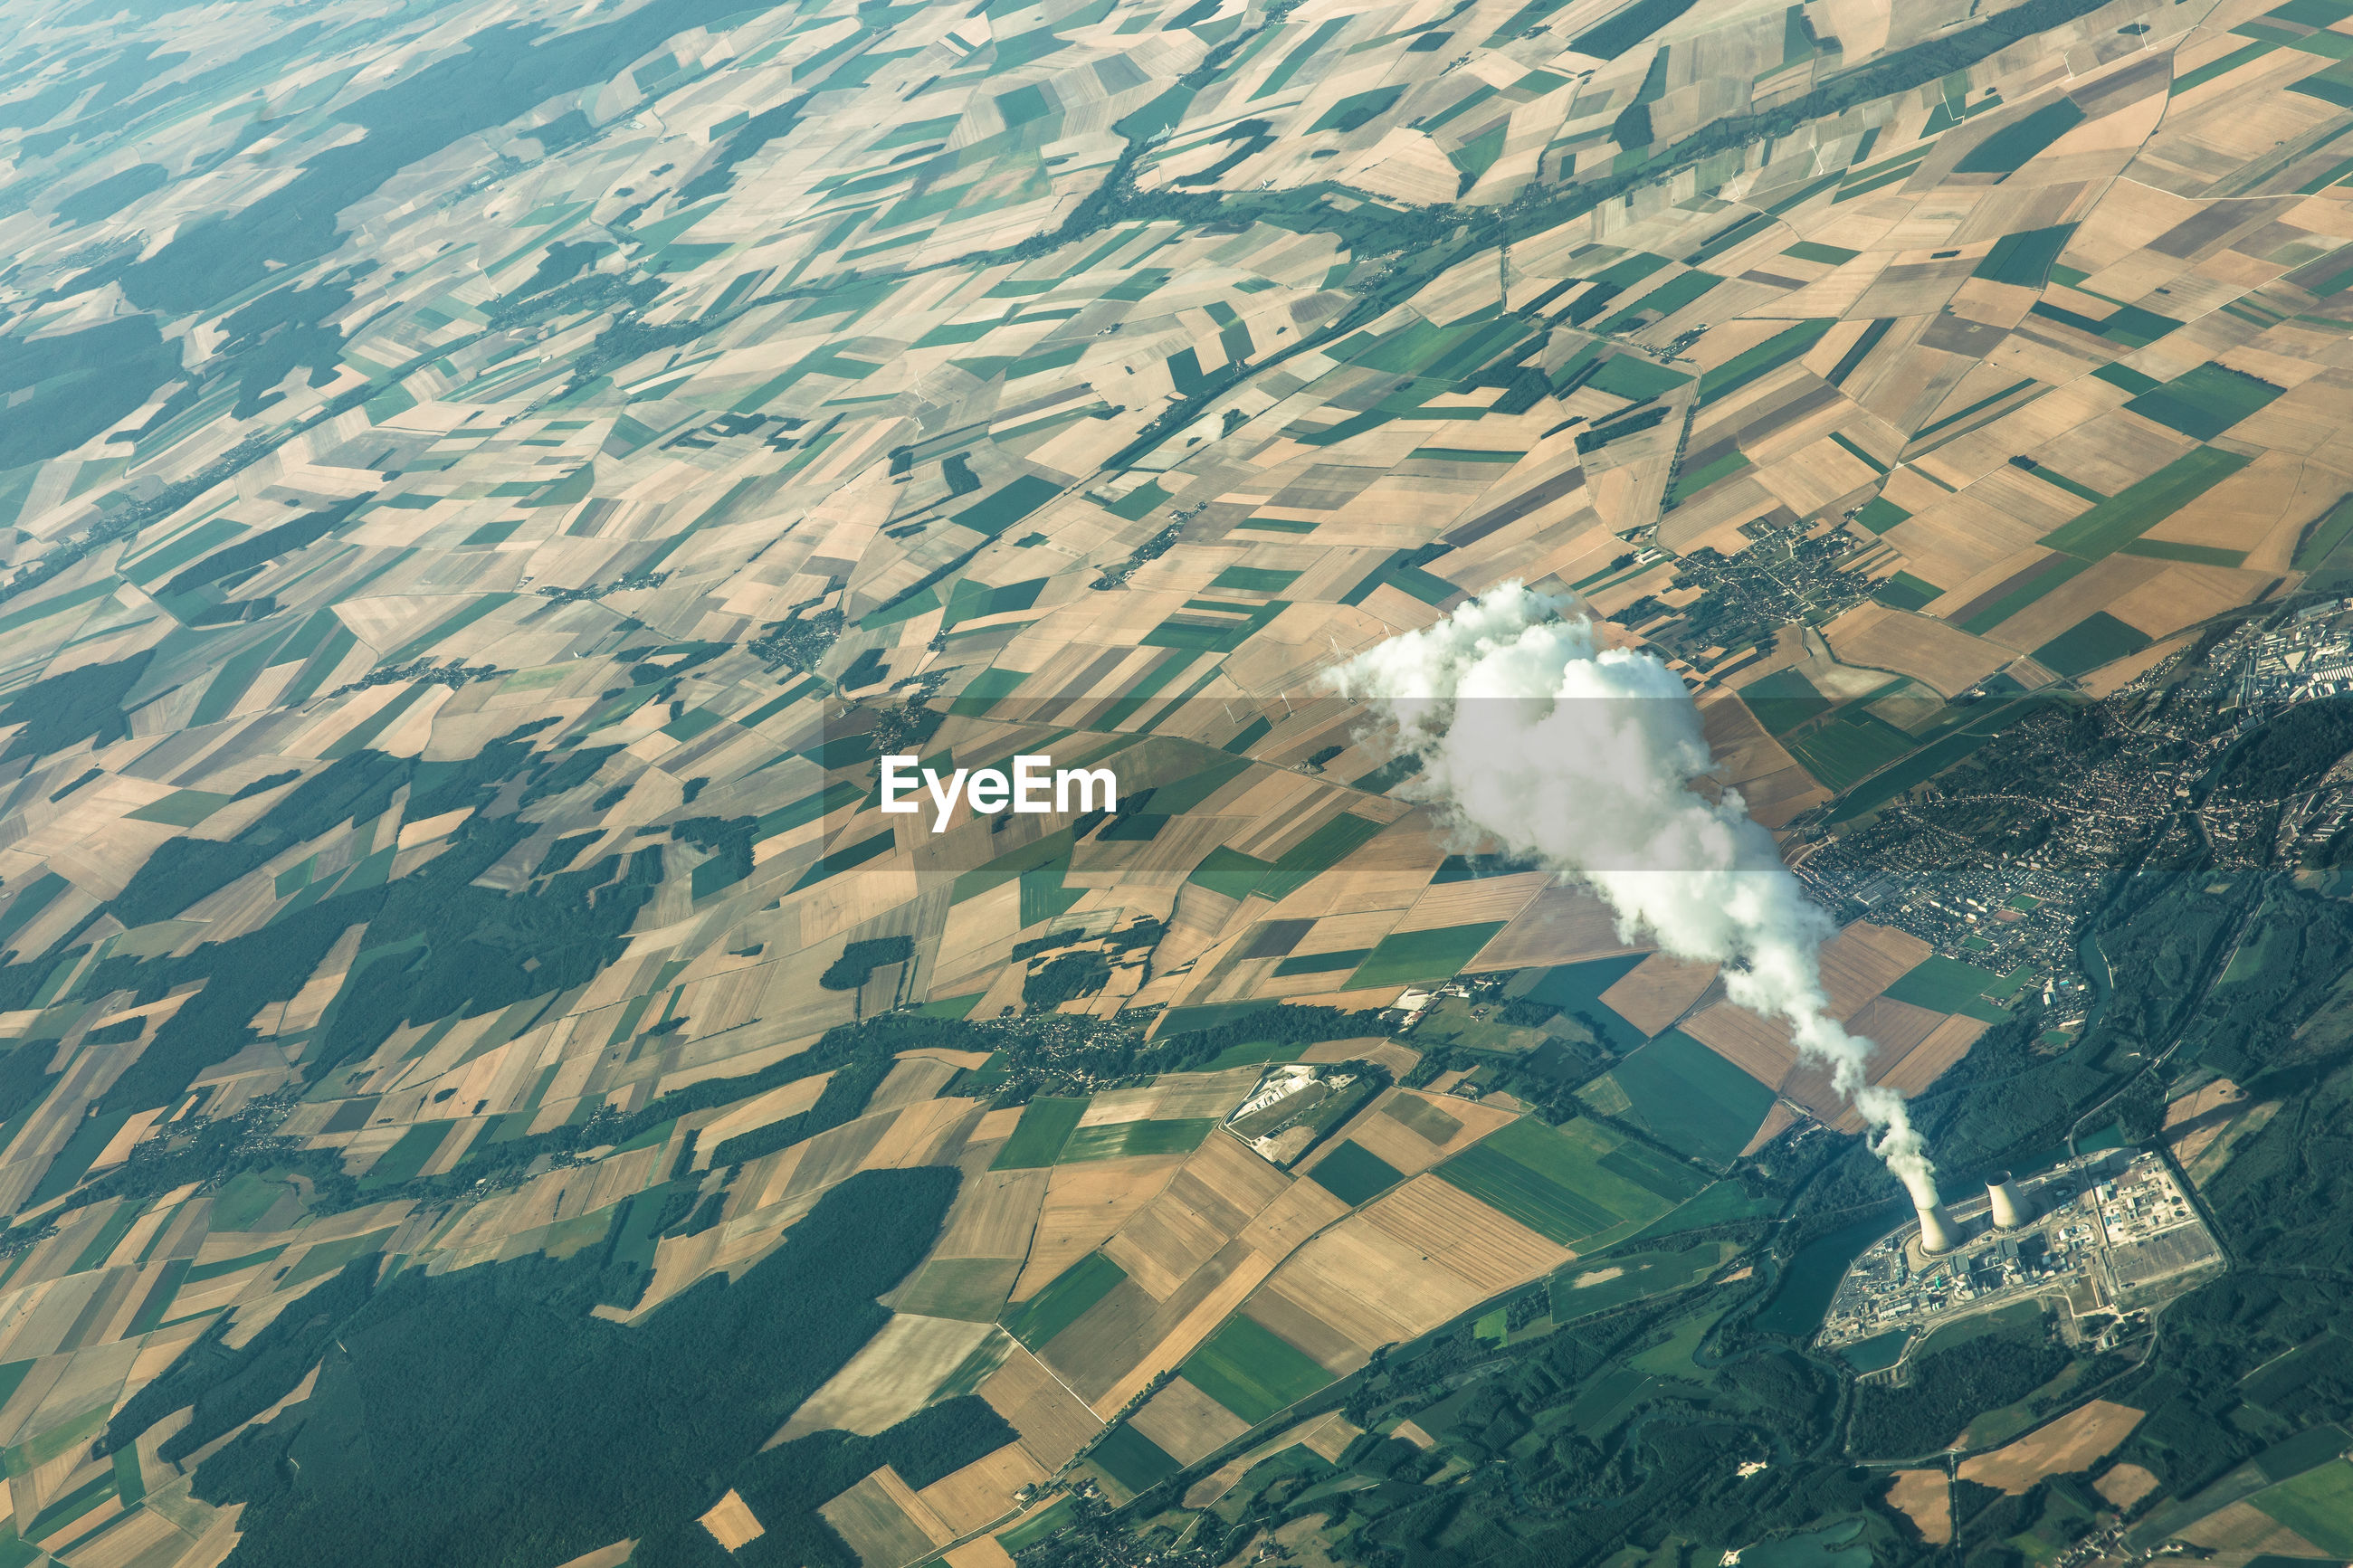 AERIAL VIEW OF AGRICULTURAL LAND AND LANDSCAPE